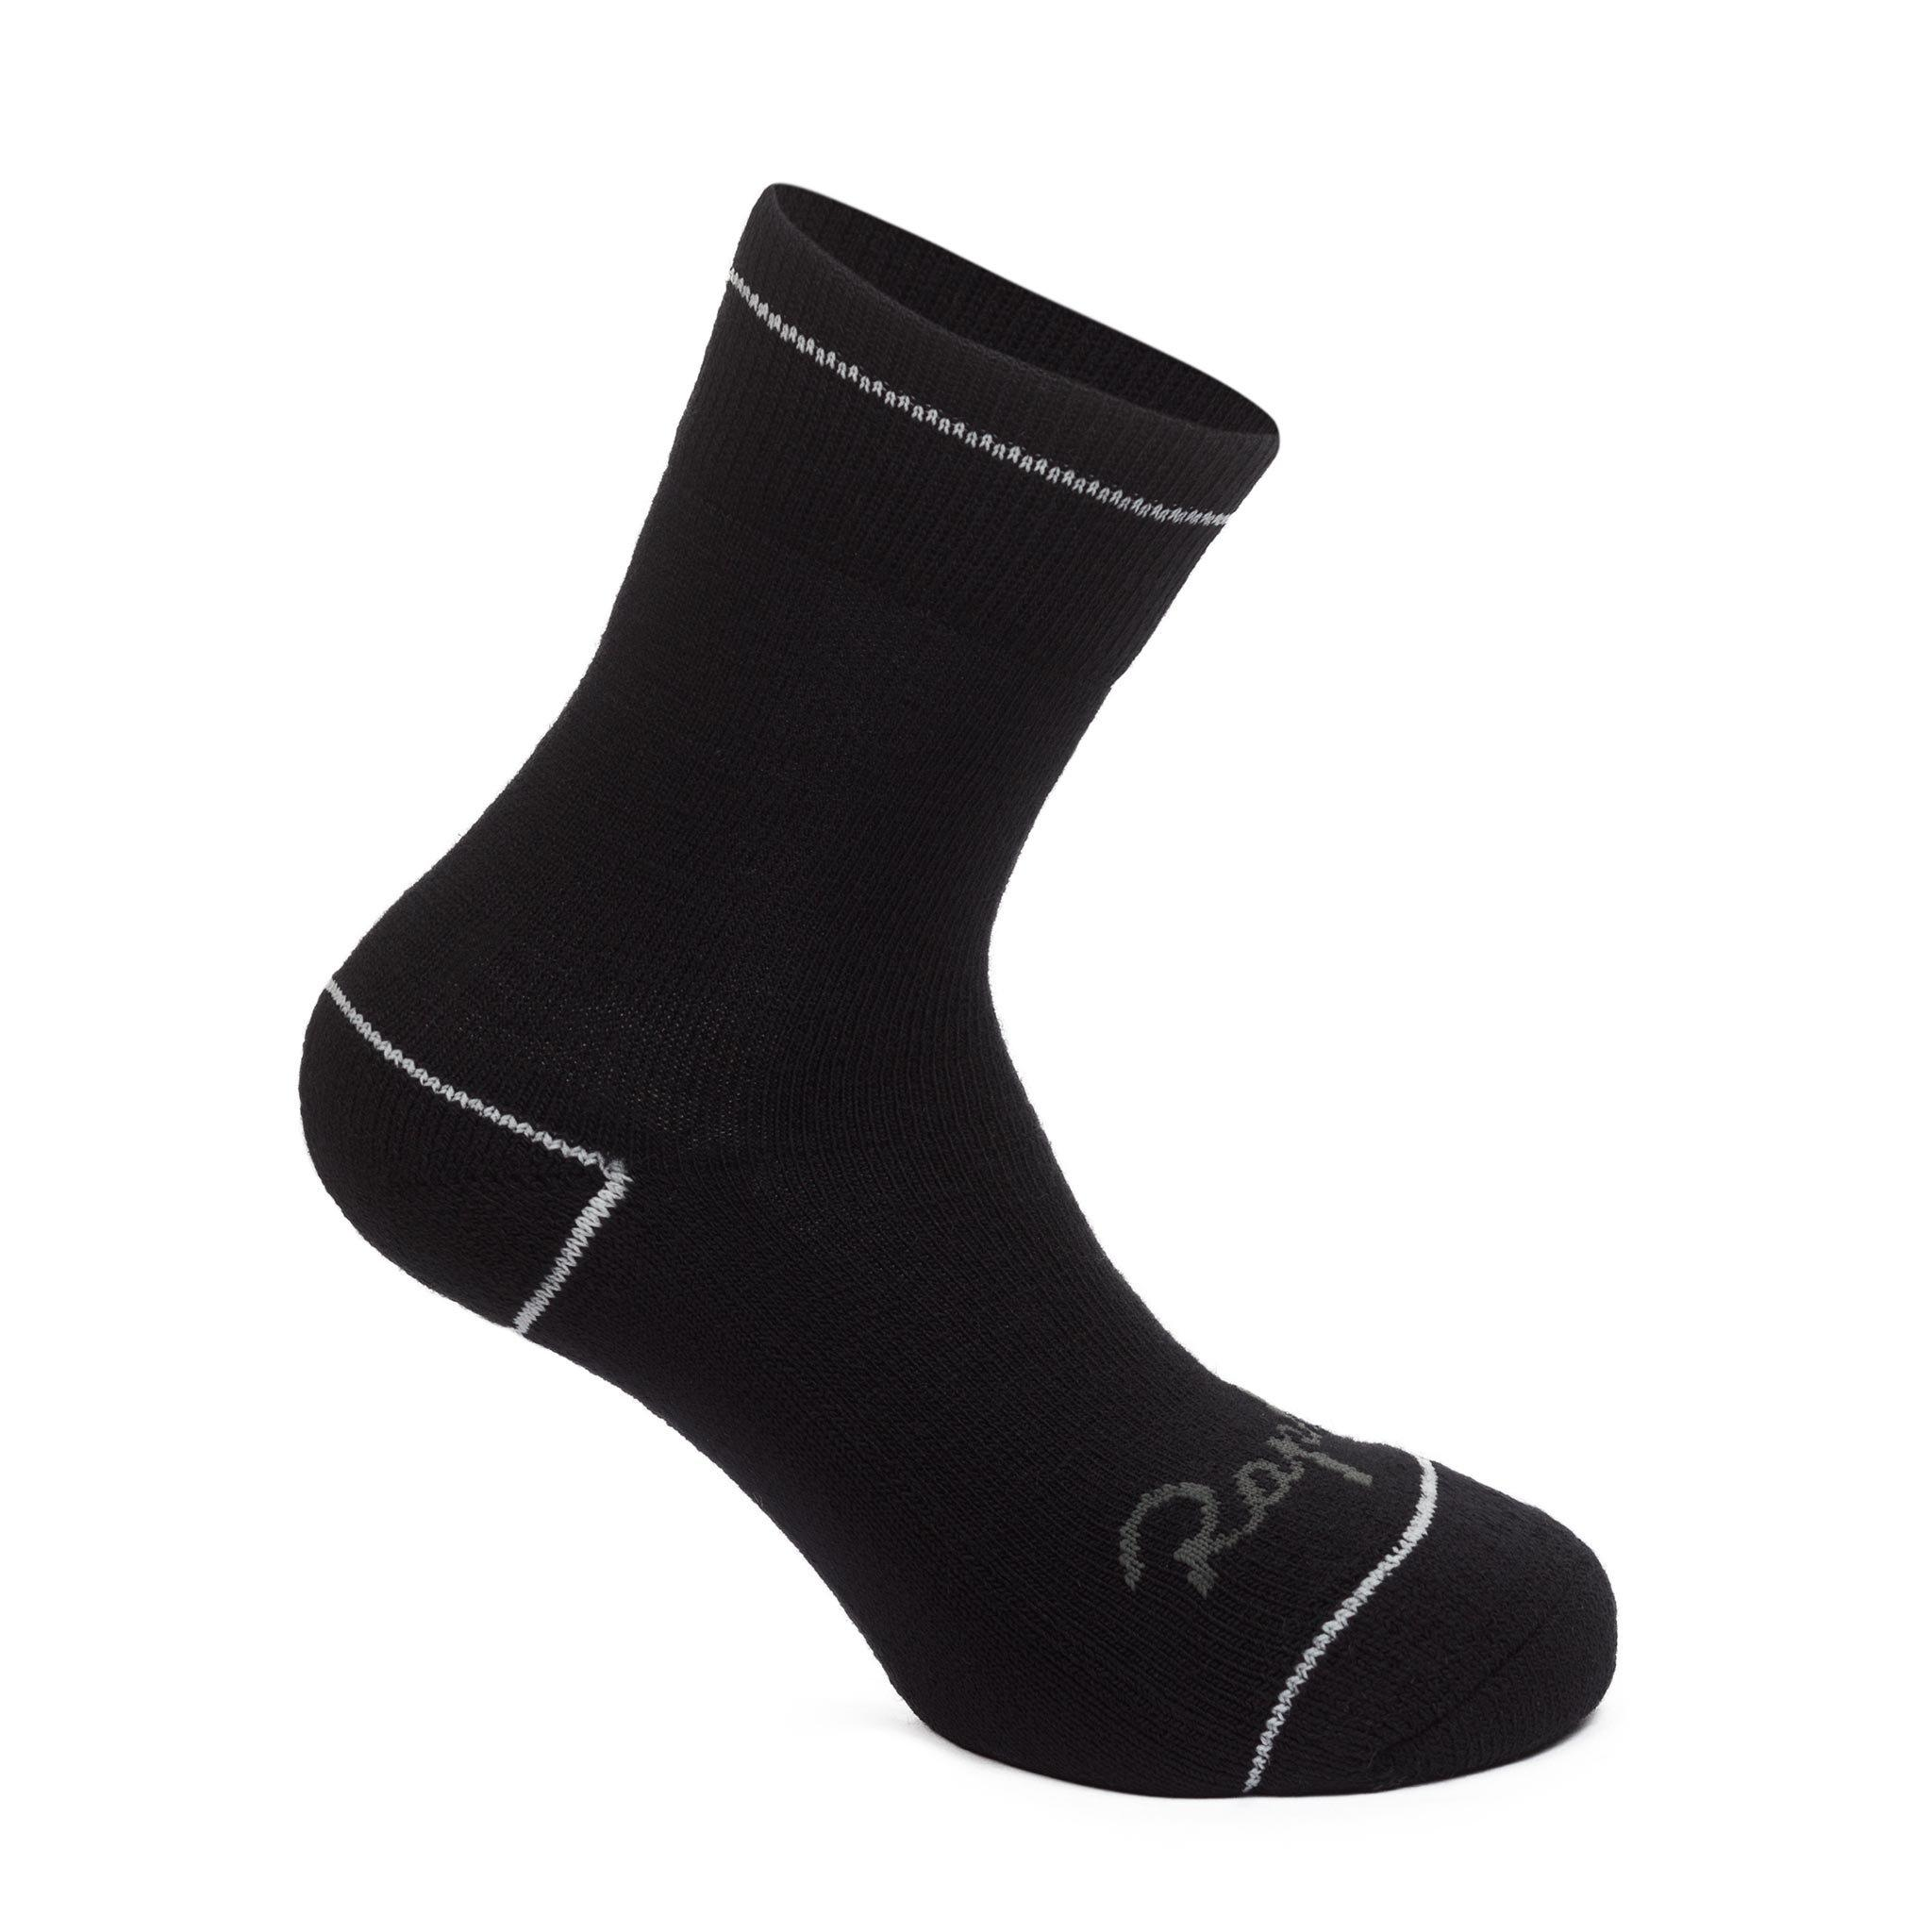 Rapha Cross Pro Team Socks Extra Long Chequered Black Mens Cycling Large BNWT